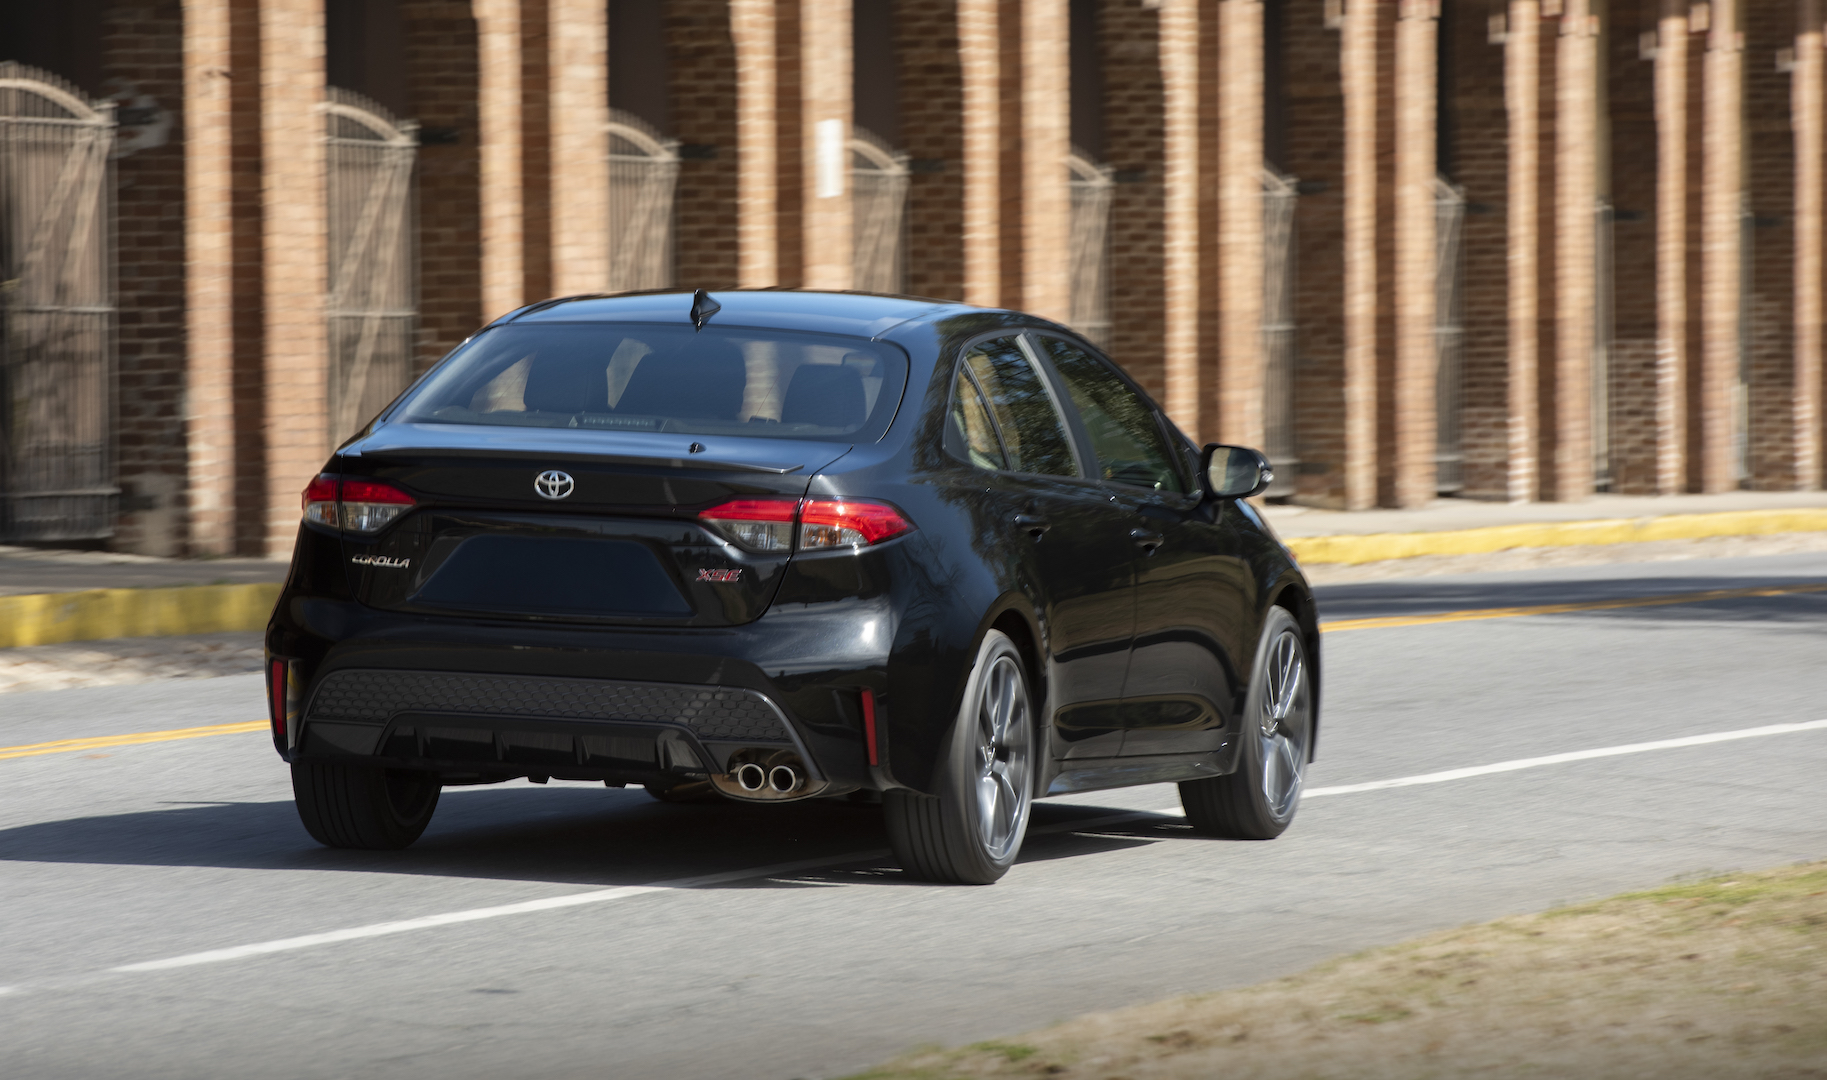 2020_Corolla_XSE_BlackSandPearl_027_v1_current